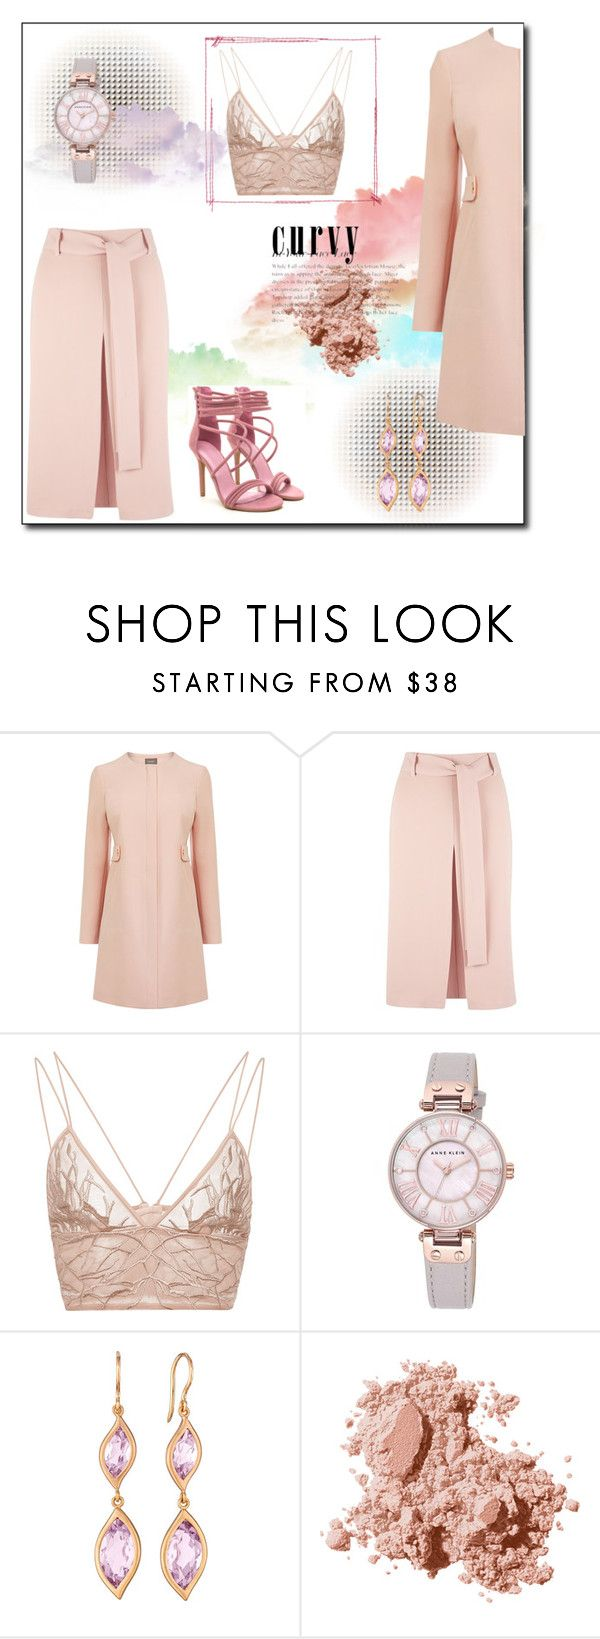 """Untitled #256"" by jaima ❤ liked on Polyvore featuring Closet, Jonathan Simkhai, Anne Klein, Carelle, Bobbi Brown Cosmetics and powerlook"